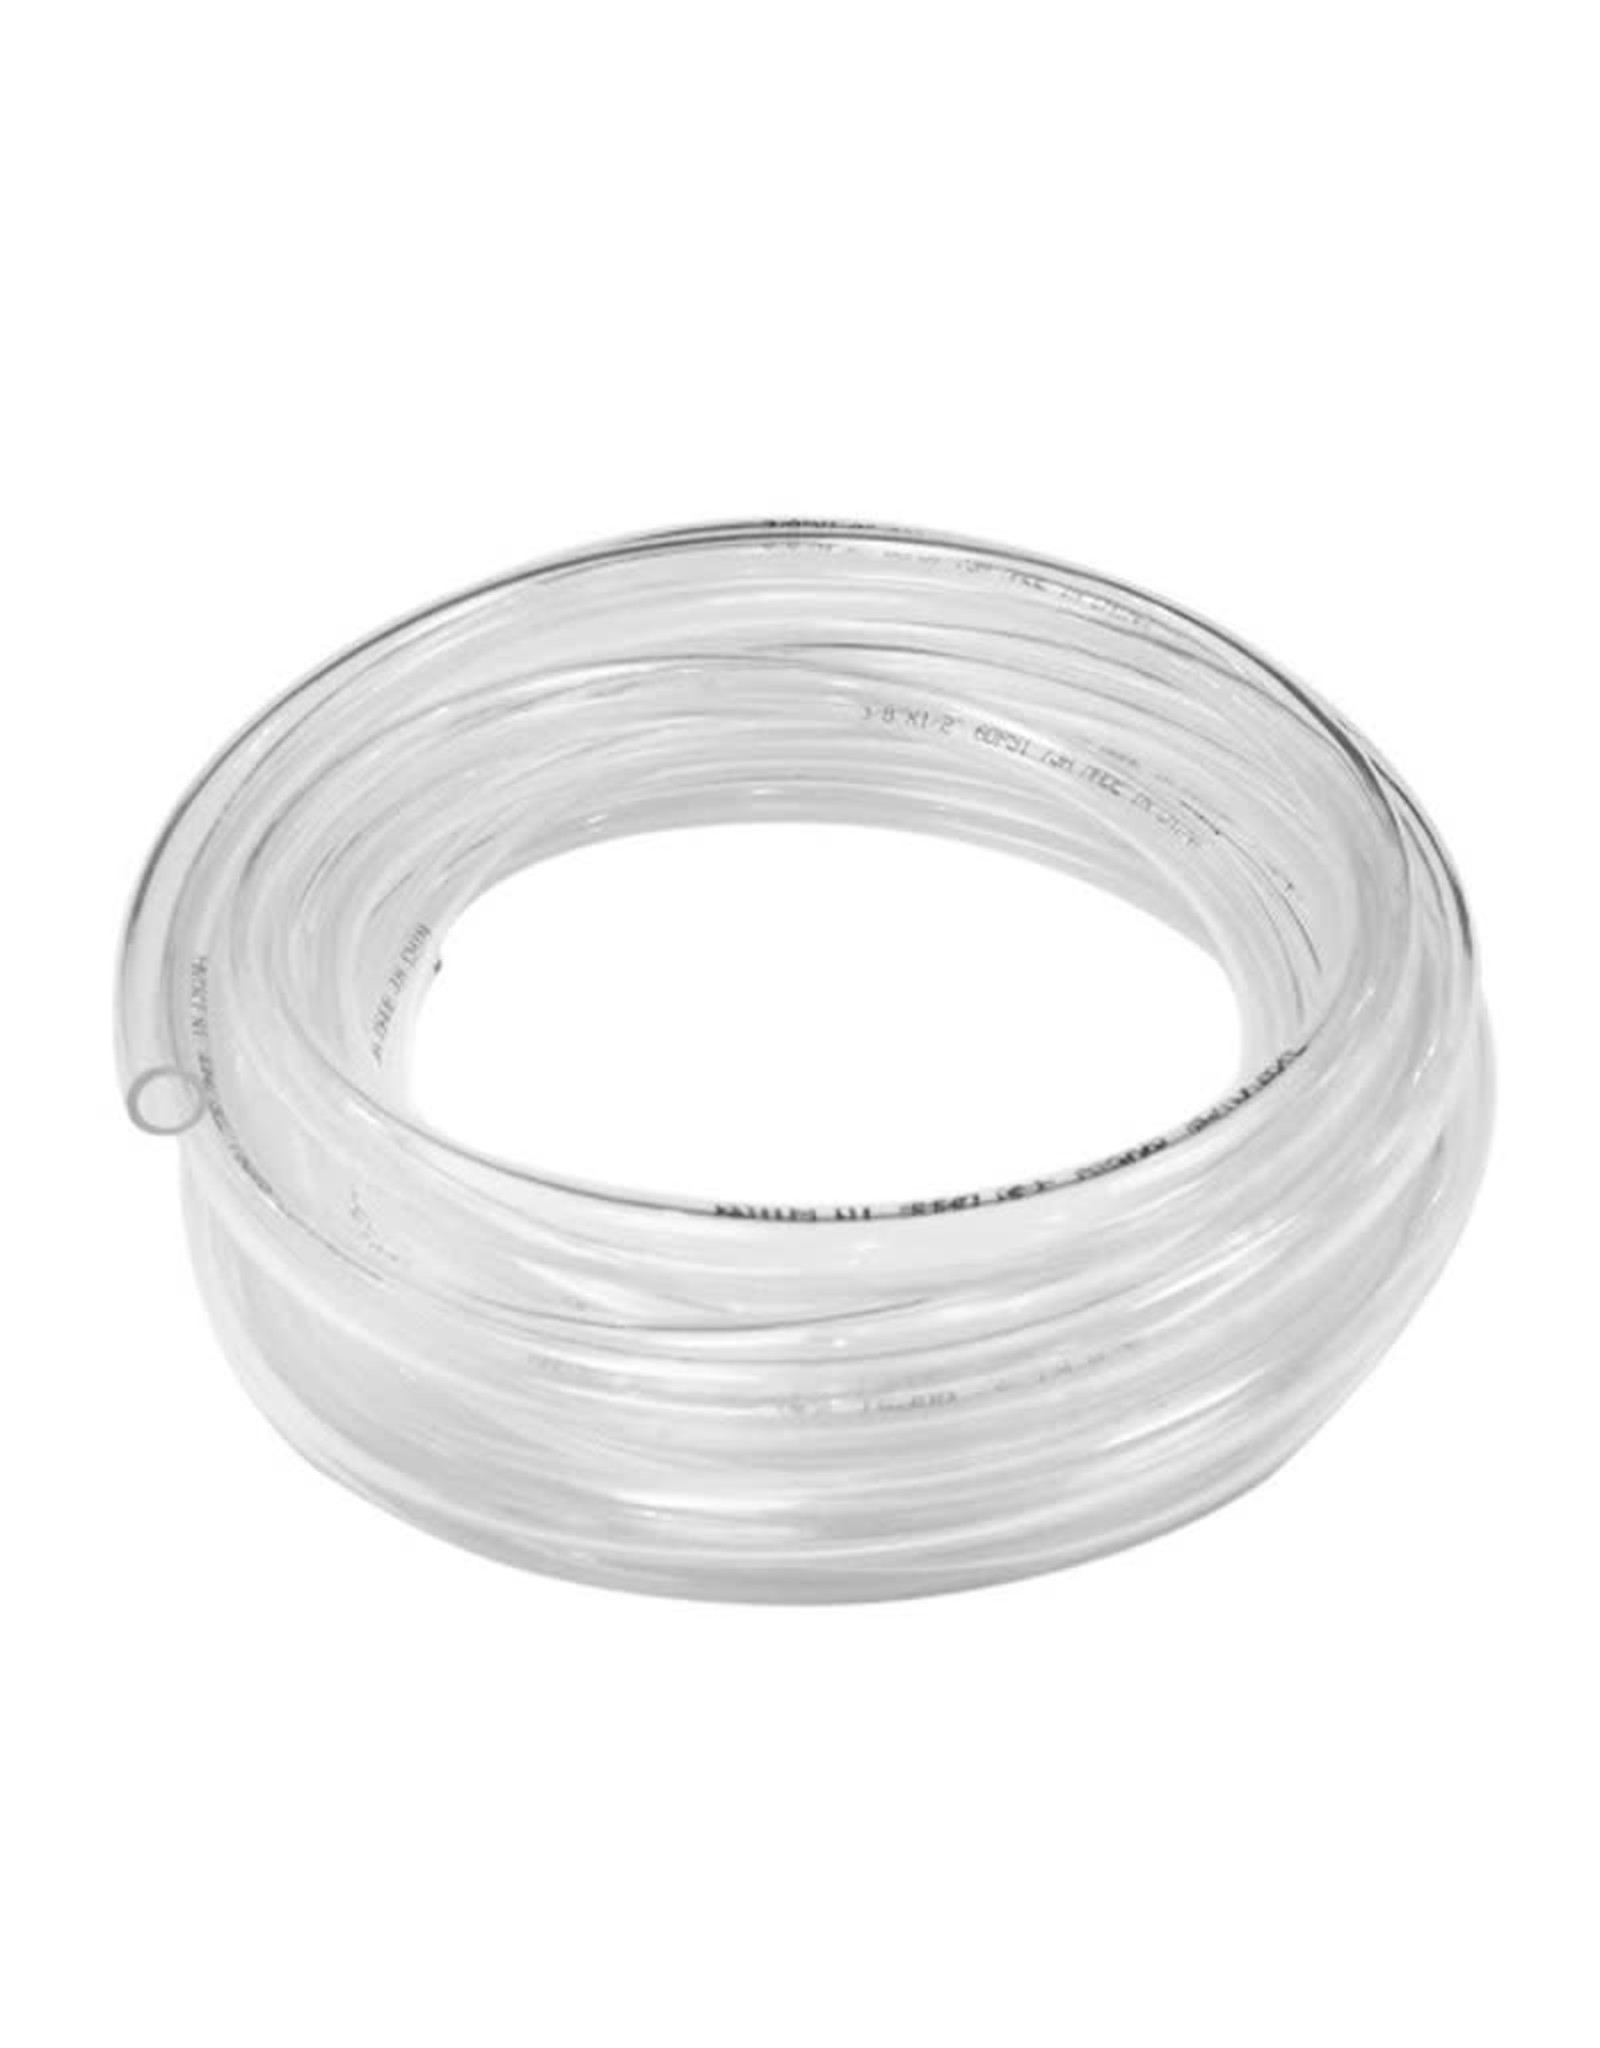 Harder & Steenbeck Harder & Steenbeck Hose PVC clear, 4 x 6 mm (par mètre)